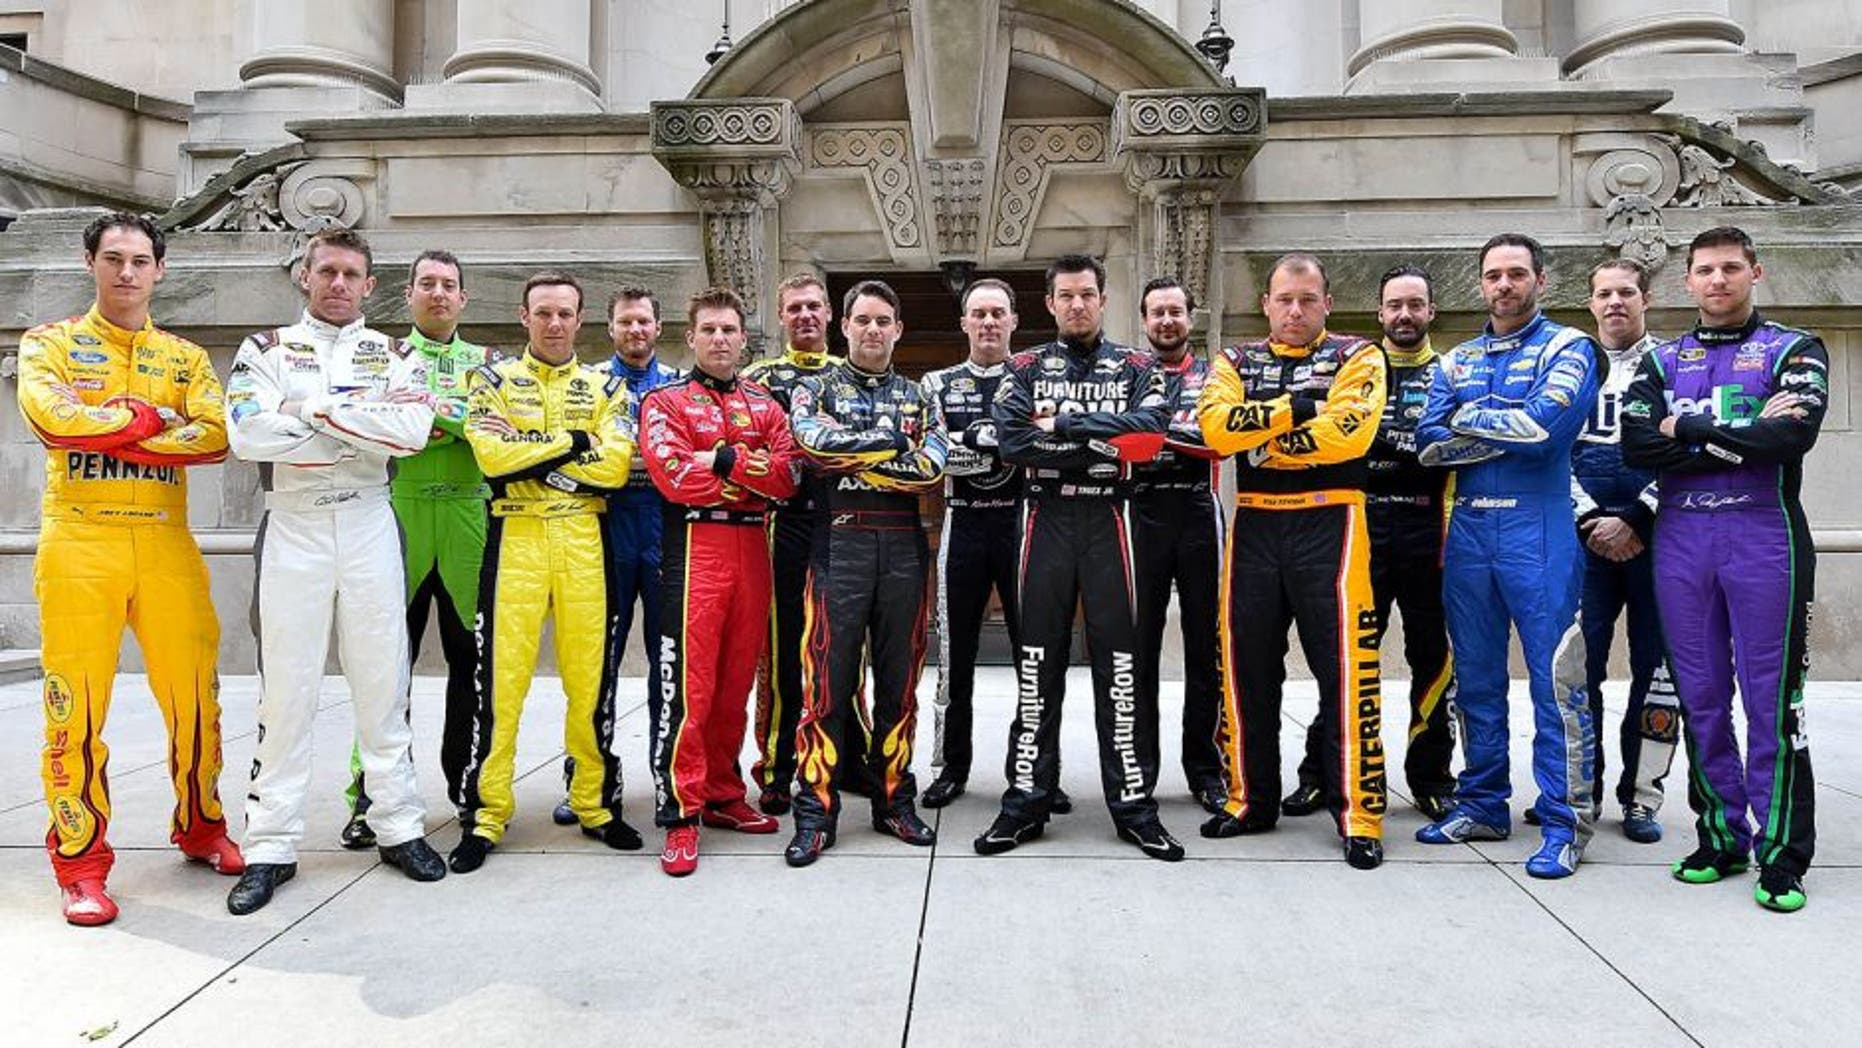 Sep 17, 2015; Chicago, IL, USA; NASCAR Sprint Cup Series drivers pose for a picture during the The Chase for the NASCAR Sprint Cup Media Day at The Murphy Chicago. Mandatory Credit: Jasen Vinlove-USA TODAY Sports